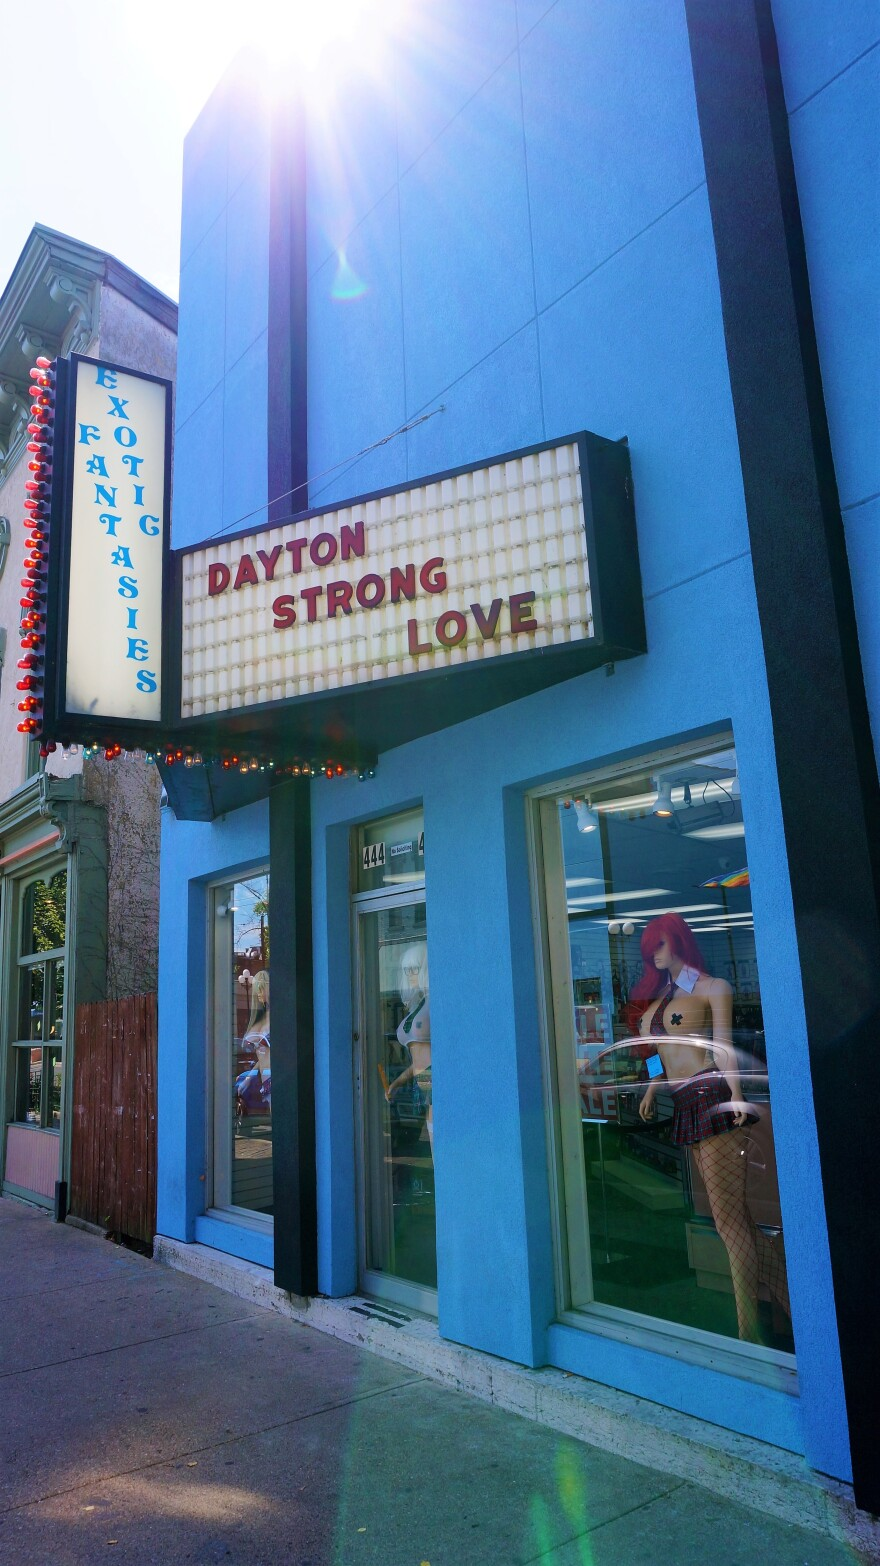 Exotic Fantasies usually has risque phrases on its marquee, but they posted messages of support for months after the mass shooting on Fifth Street in the Oregon District.